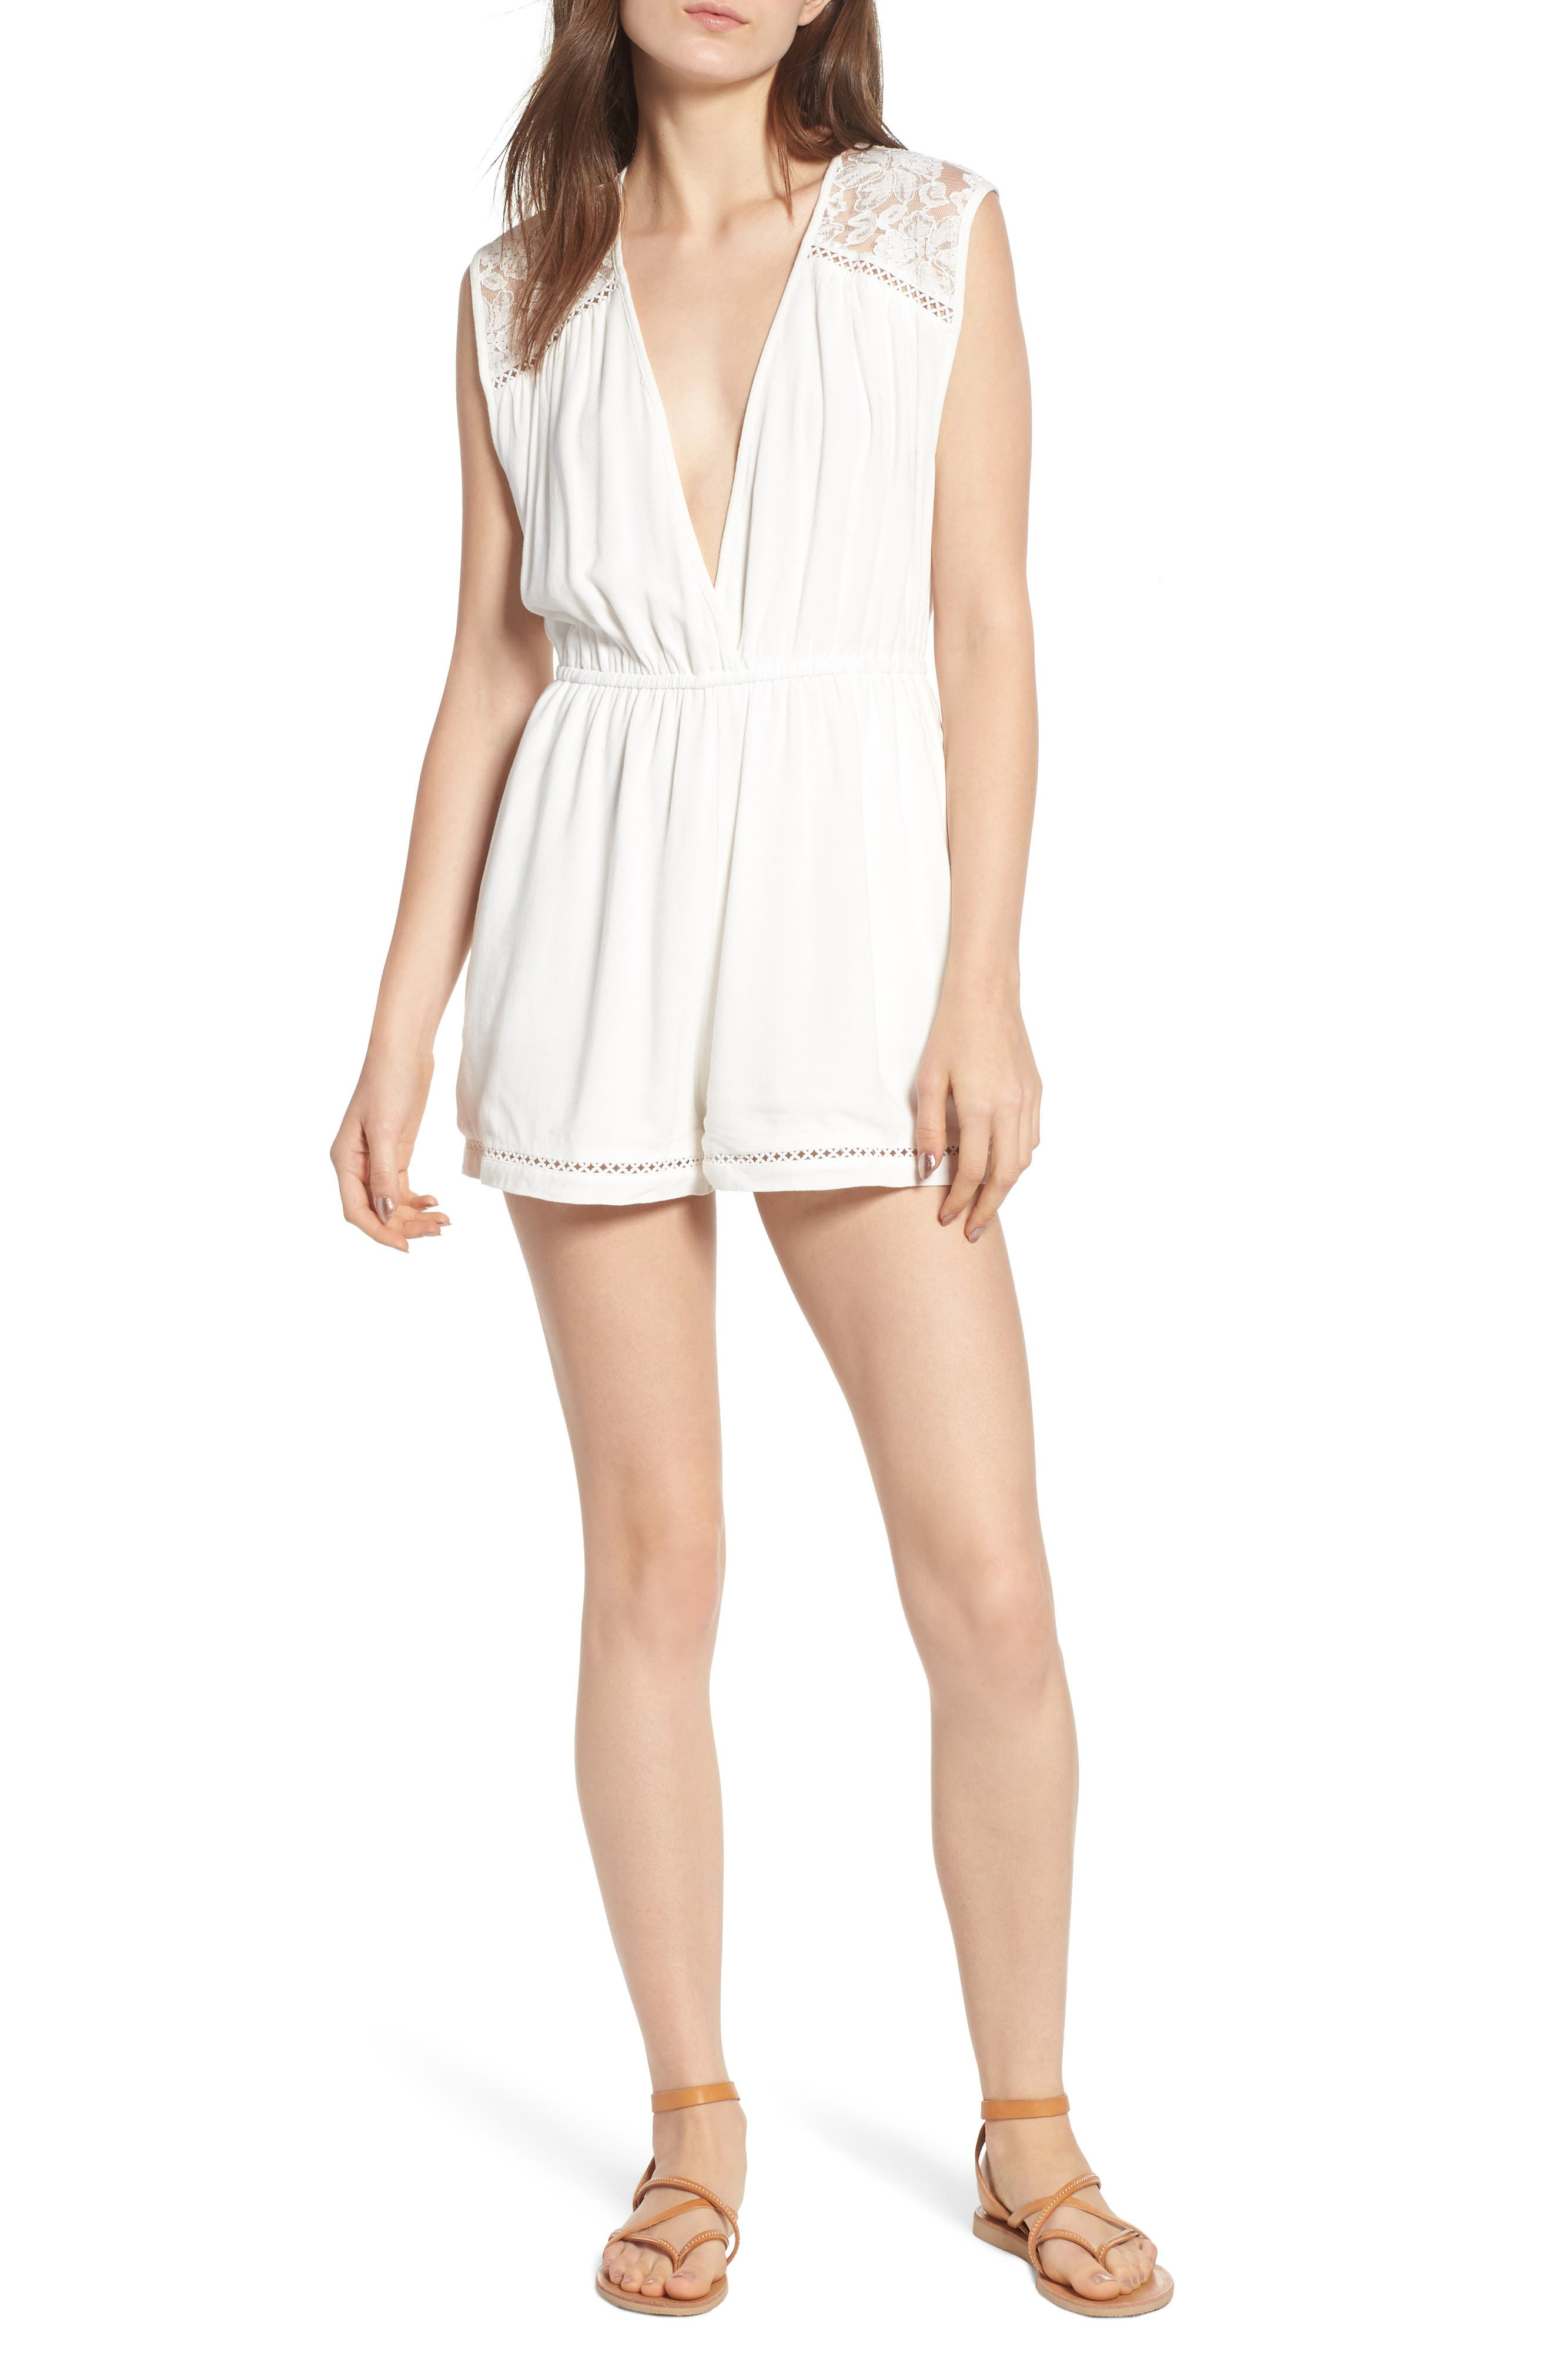 Oceans Away Lace Panel Romper,                         Main,                         color, White